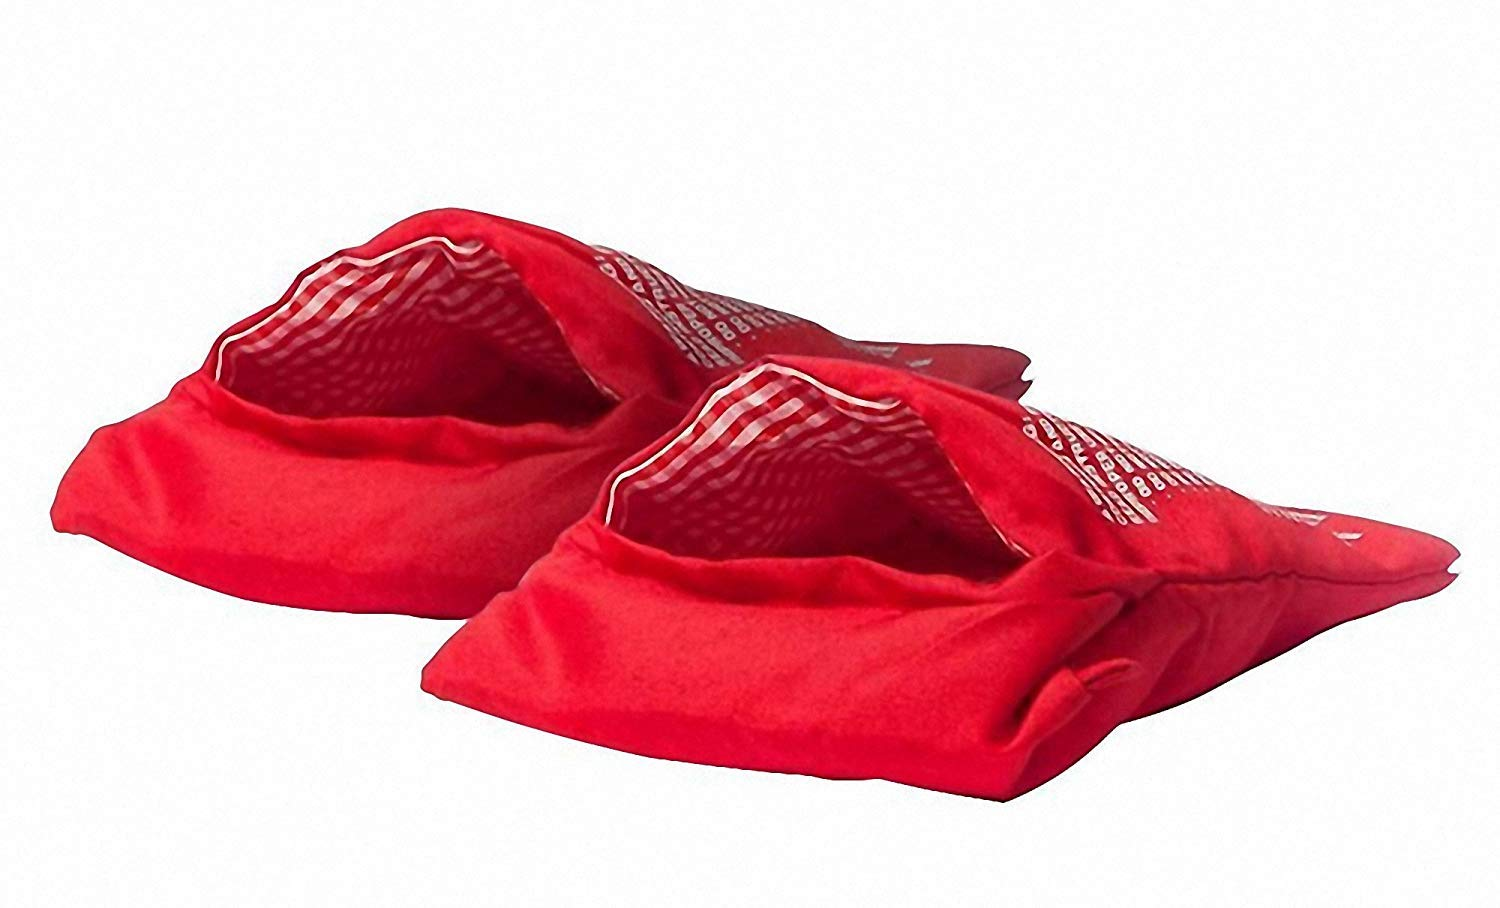 Always Fresh Kitchen Cook Tatoes Bolsa para Patatas En Microondas, Rojo, 2 x 22 x 17 cm